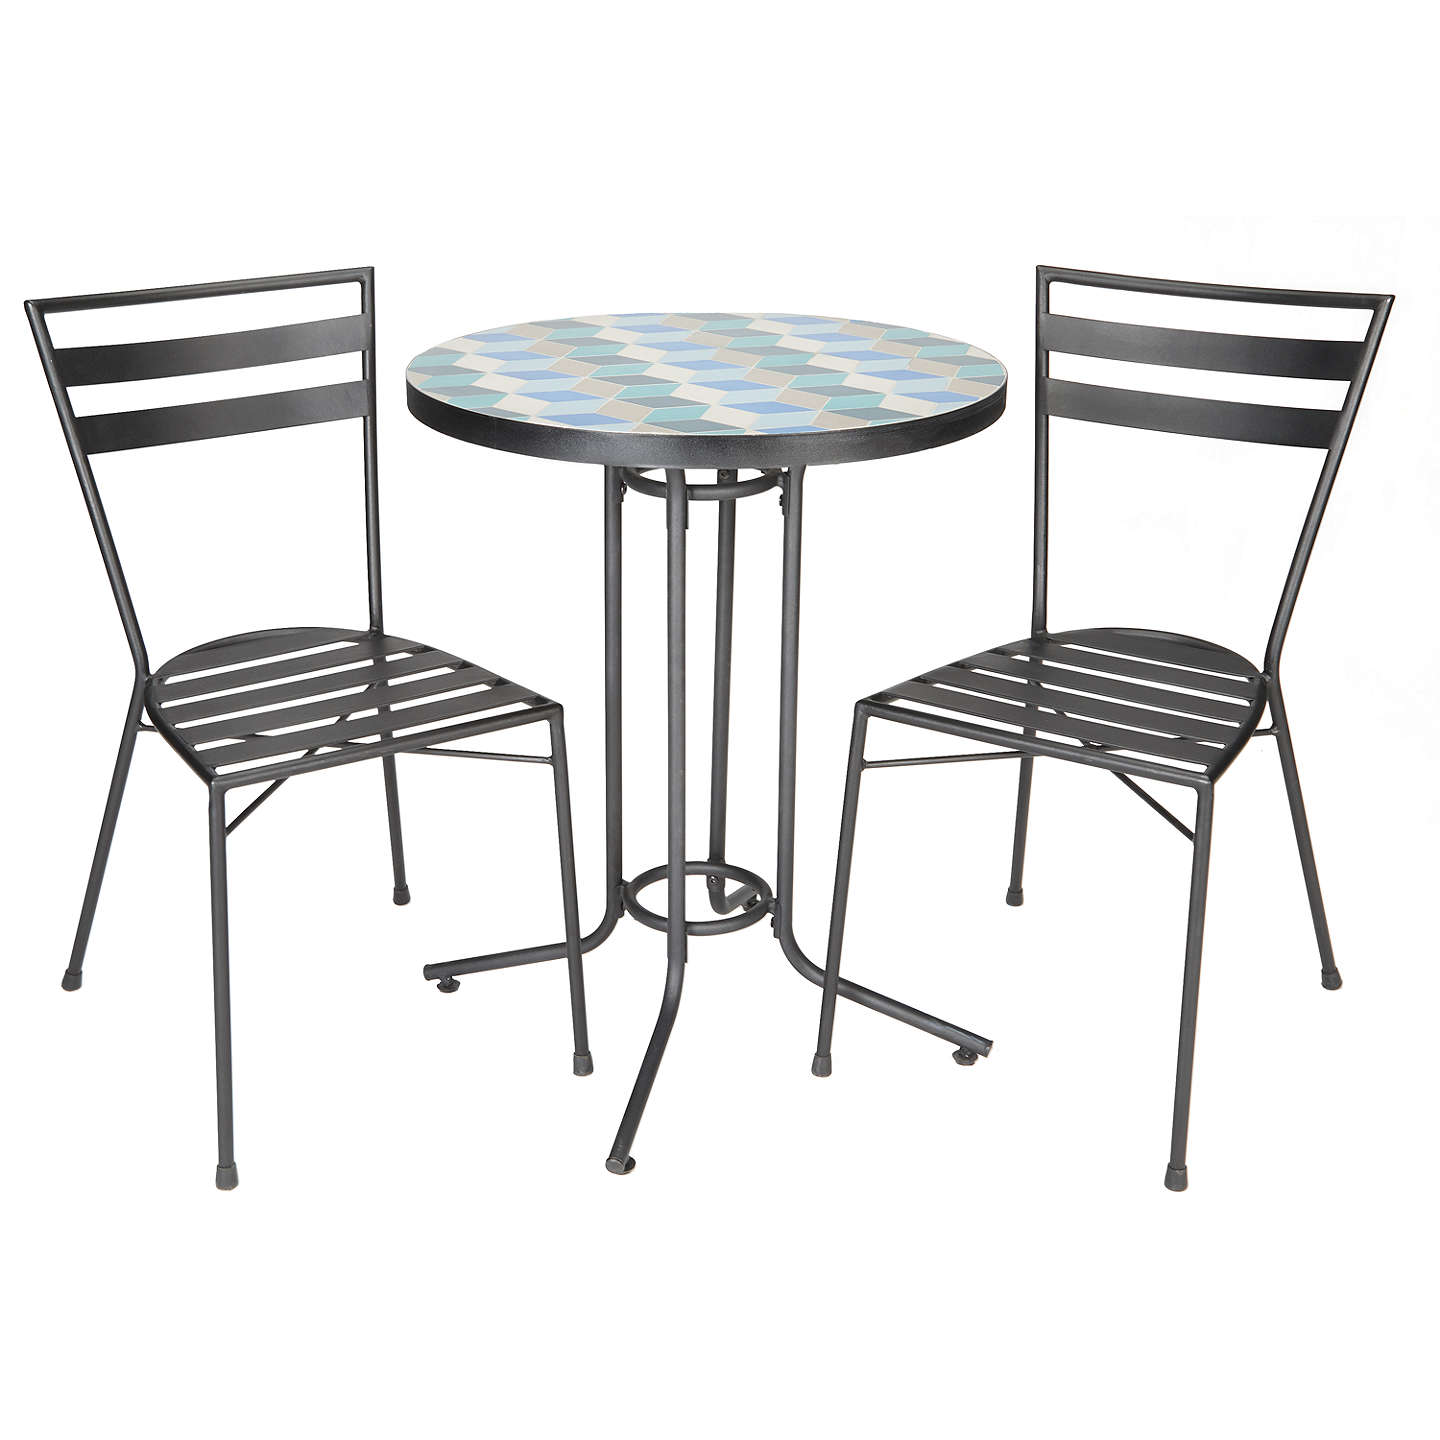 Garden Table And Chairs Set John Lewis: John Lewis Suri 2 Seater Mosaic Bistro Garden Table And